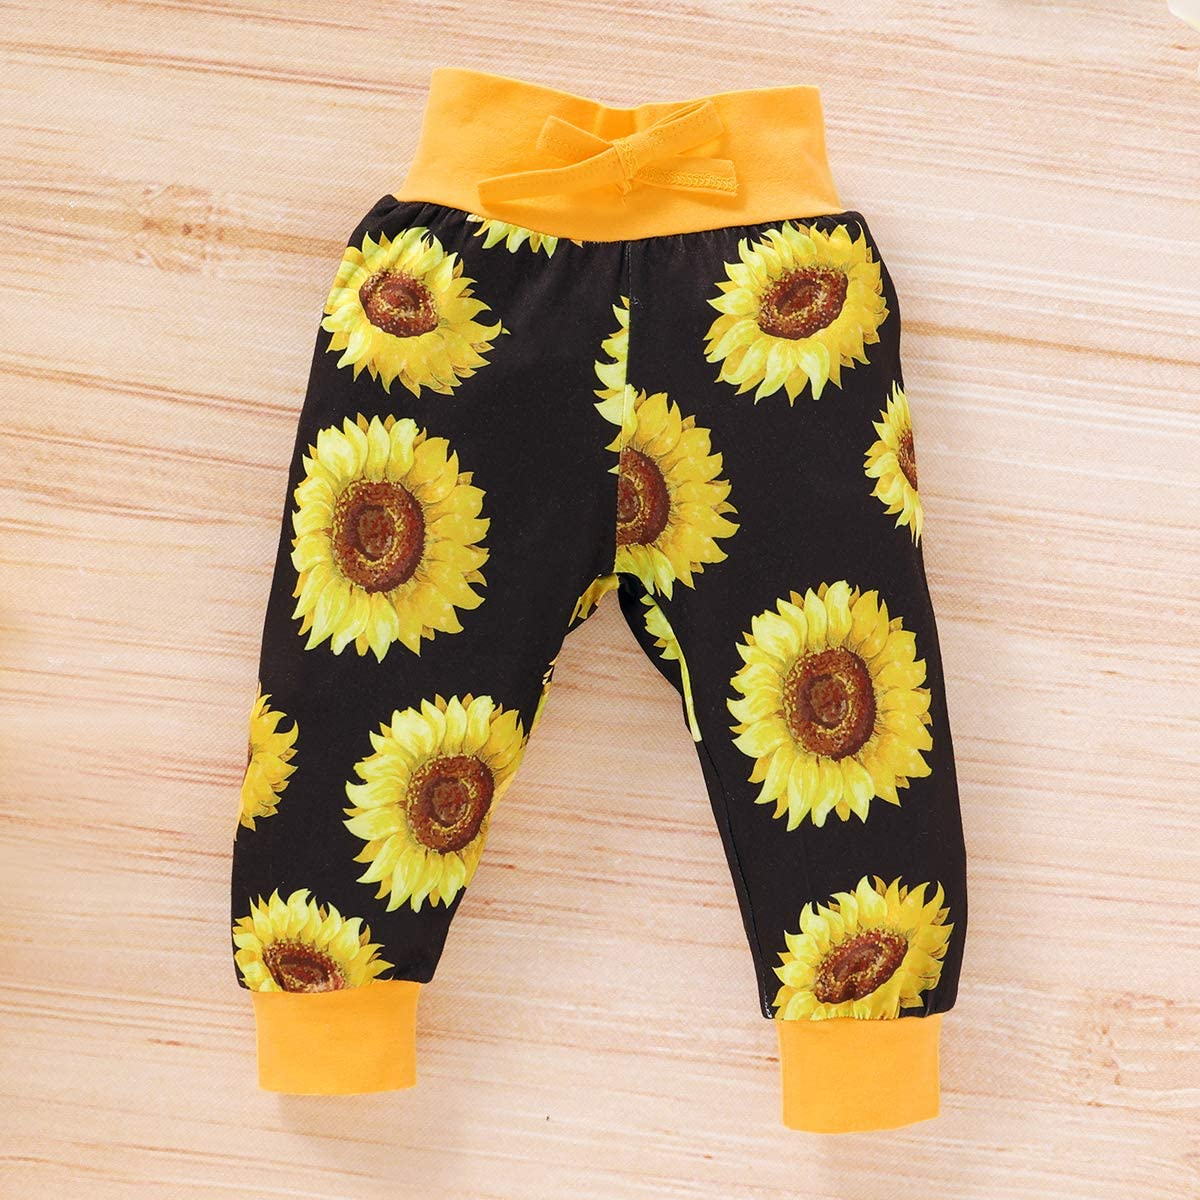 Baby Girls Newborn 3PCS Clothes Long Sleeve Top Flower T Shirt Pants Headband Infant Outfit Clothing Sets